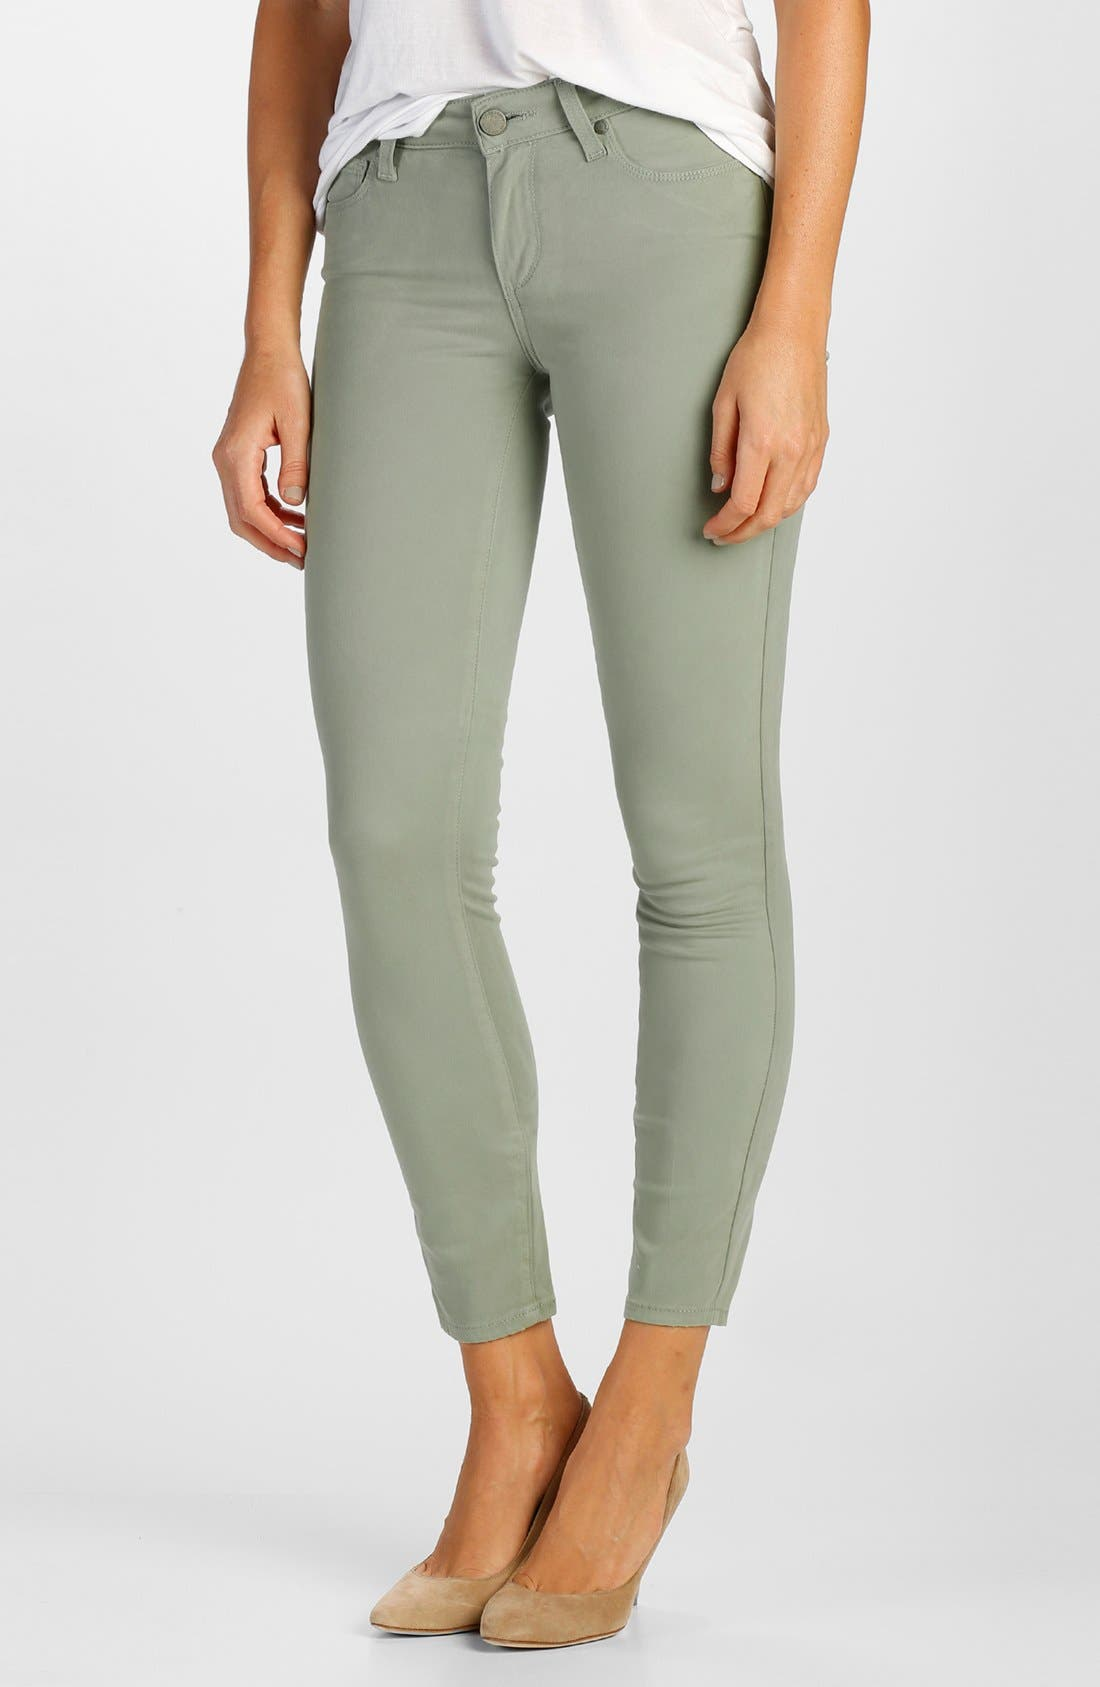 Alternate Image 1 Selected - Paige Denim 'Verdugo' Ankle Skinny Jeans